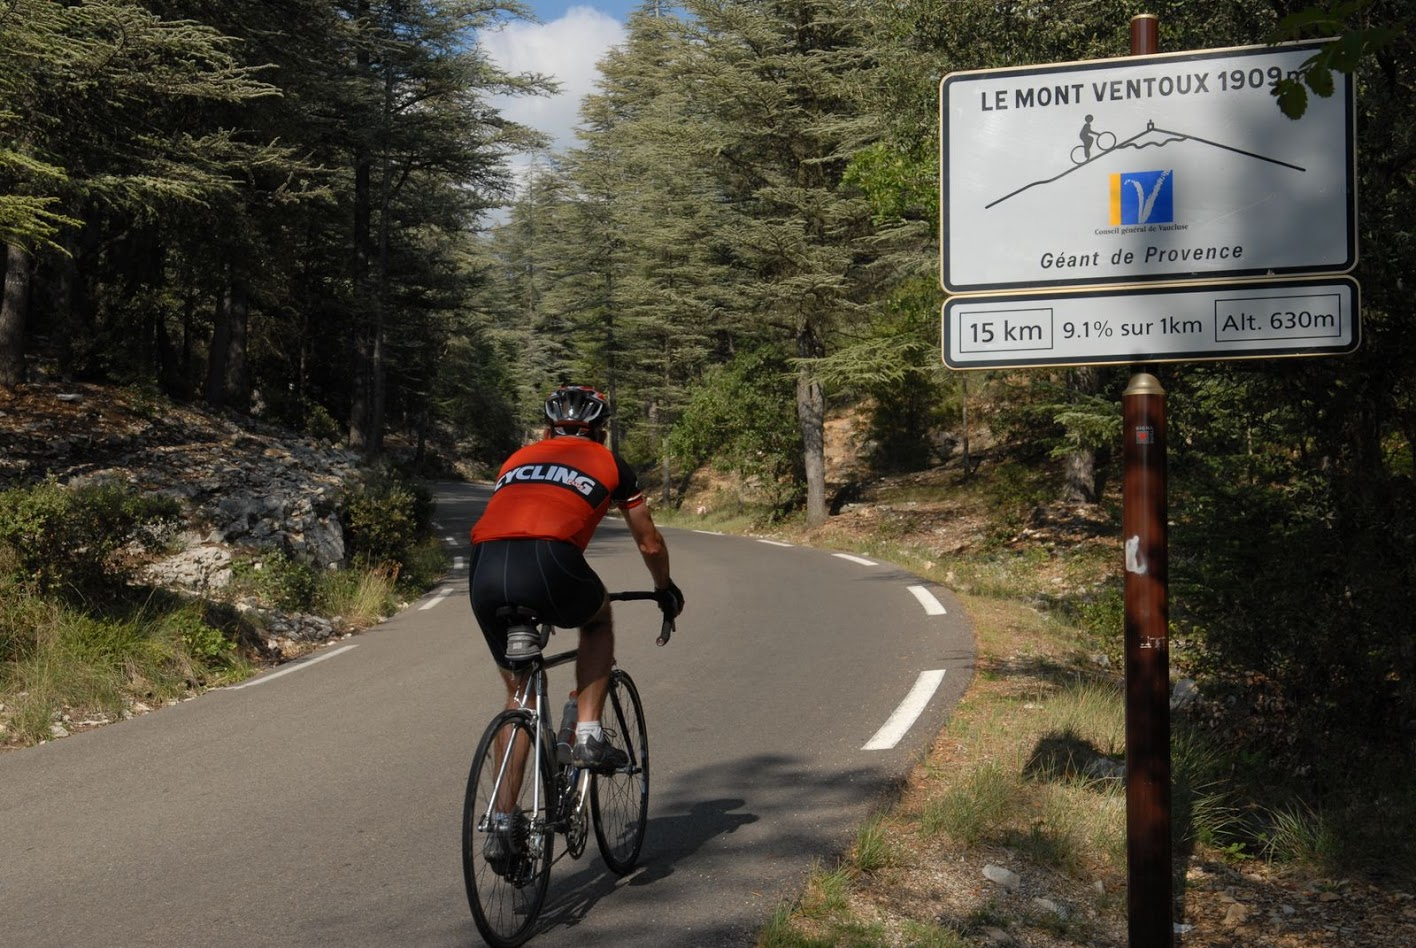 Cyclist at 630 meters in altitude